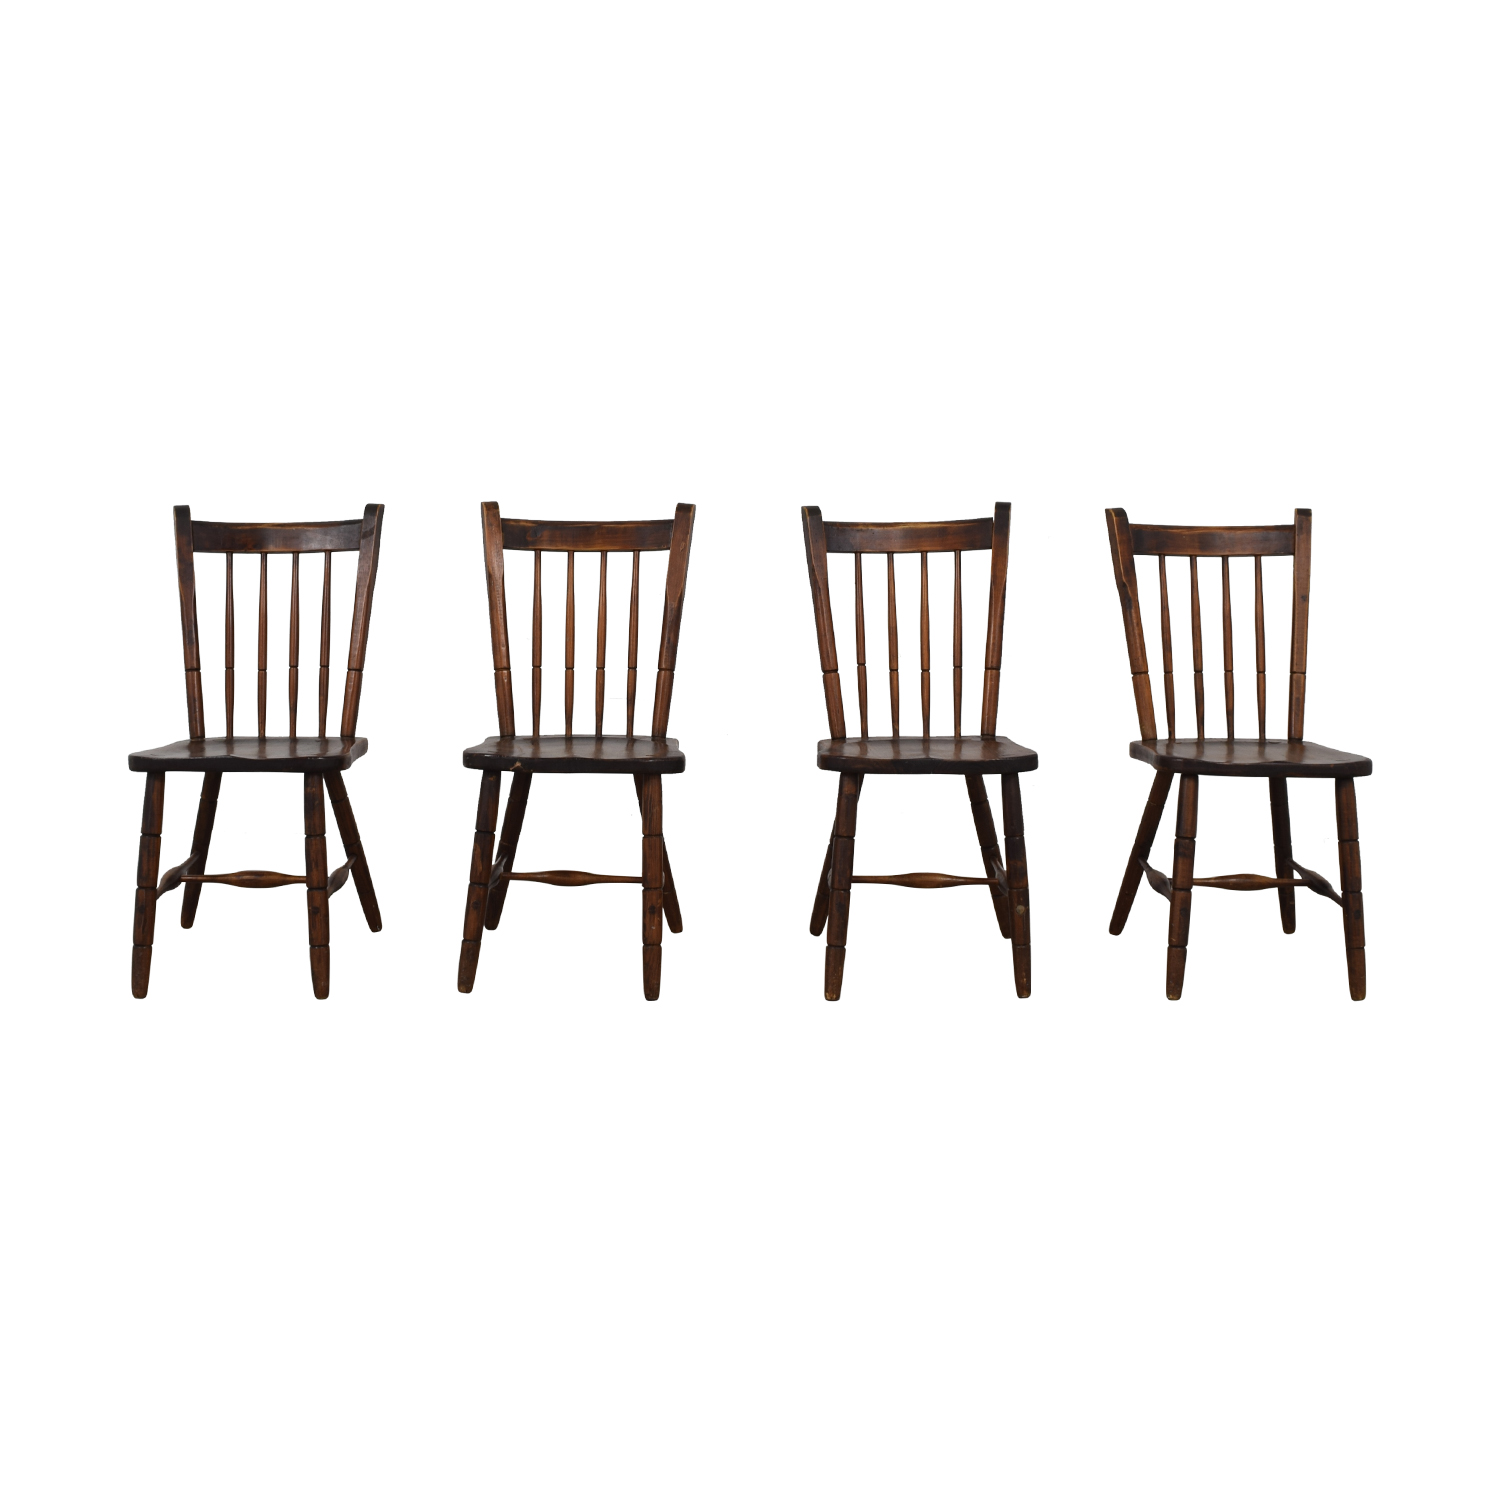 Authentic South African Pine Dining Chairs dimensions